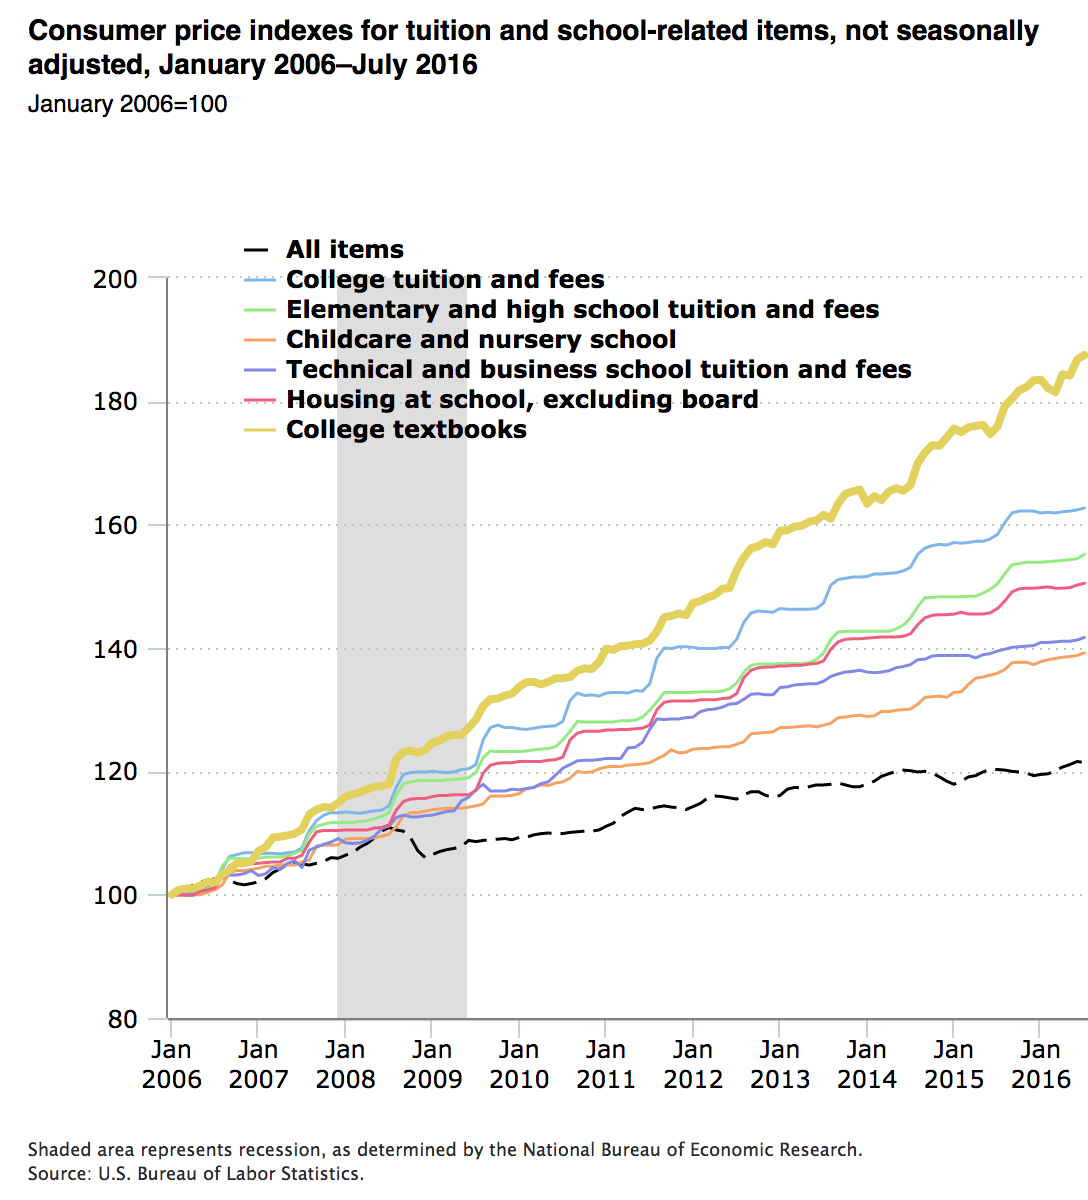 In this chart, the price index for college textbooks stands above all of the other measured items.